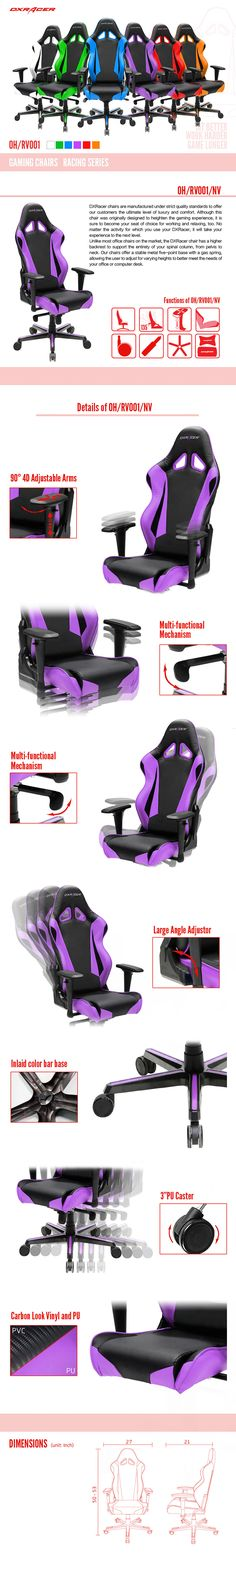 OH/RV001/NV - Racing Series - Gaming Chairs | DXRacer Official Website - Best Gaming Chair and Desk in the World